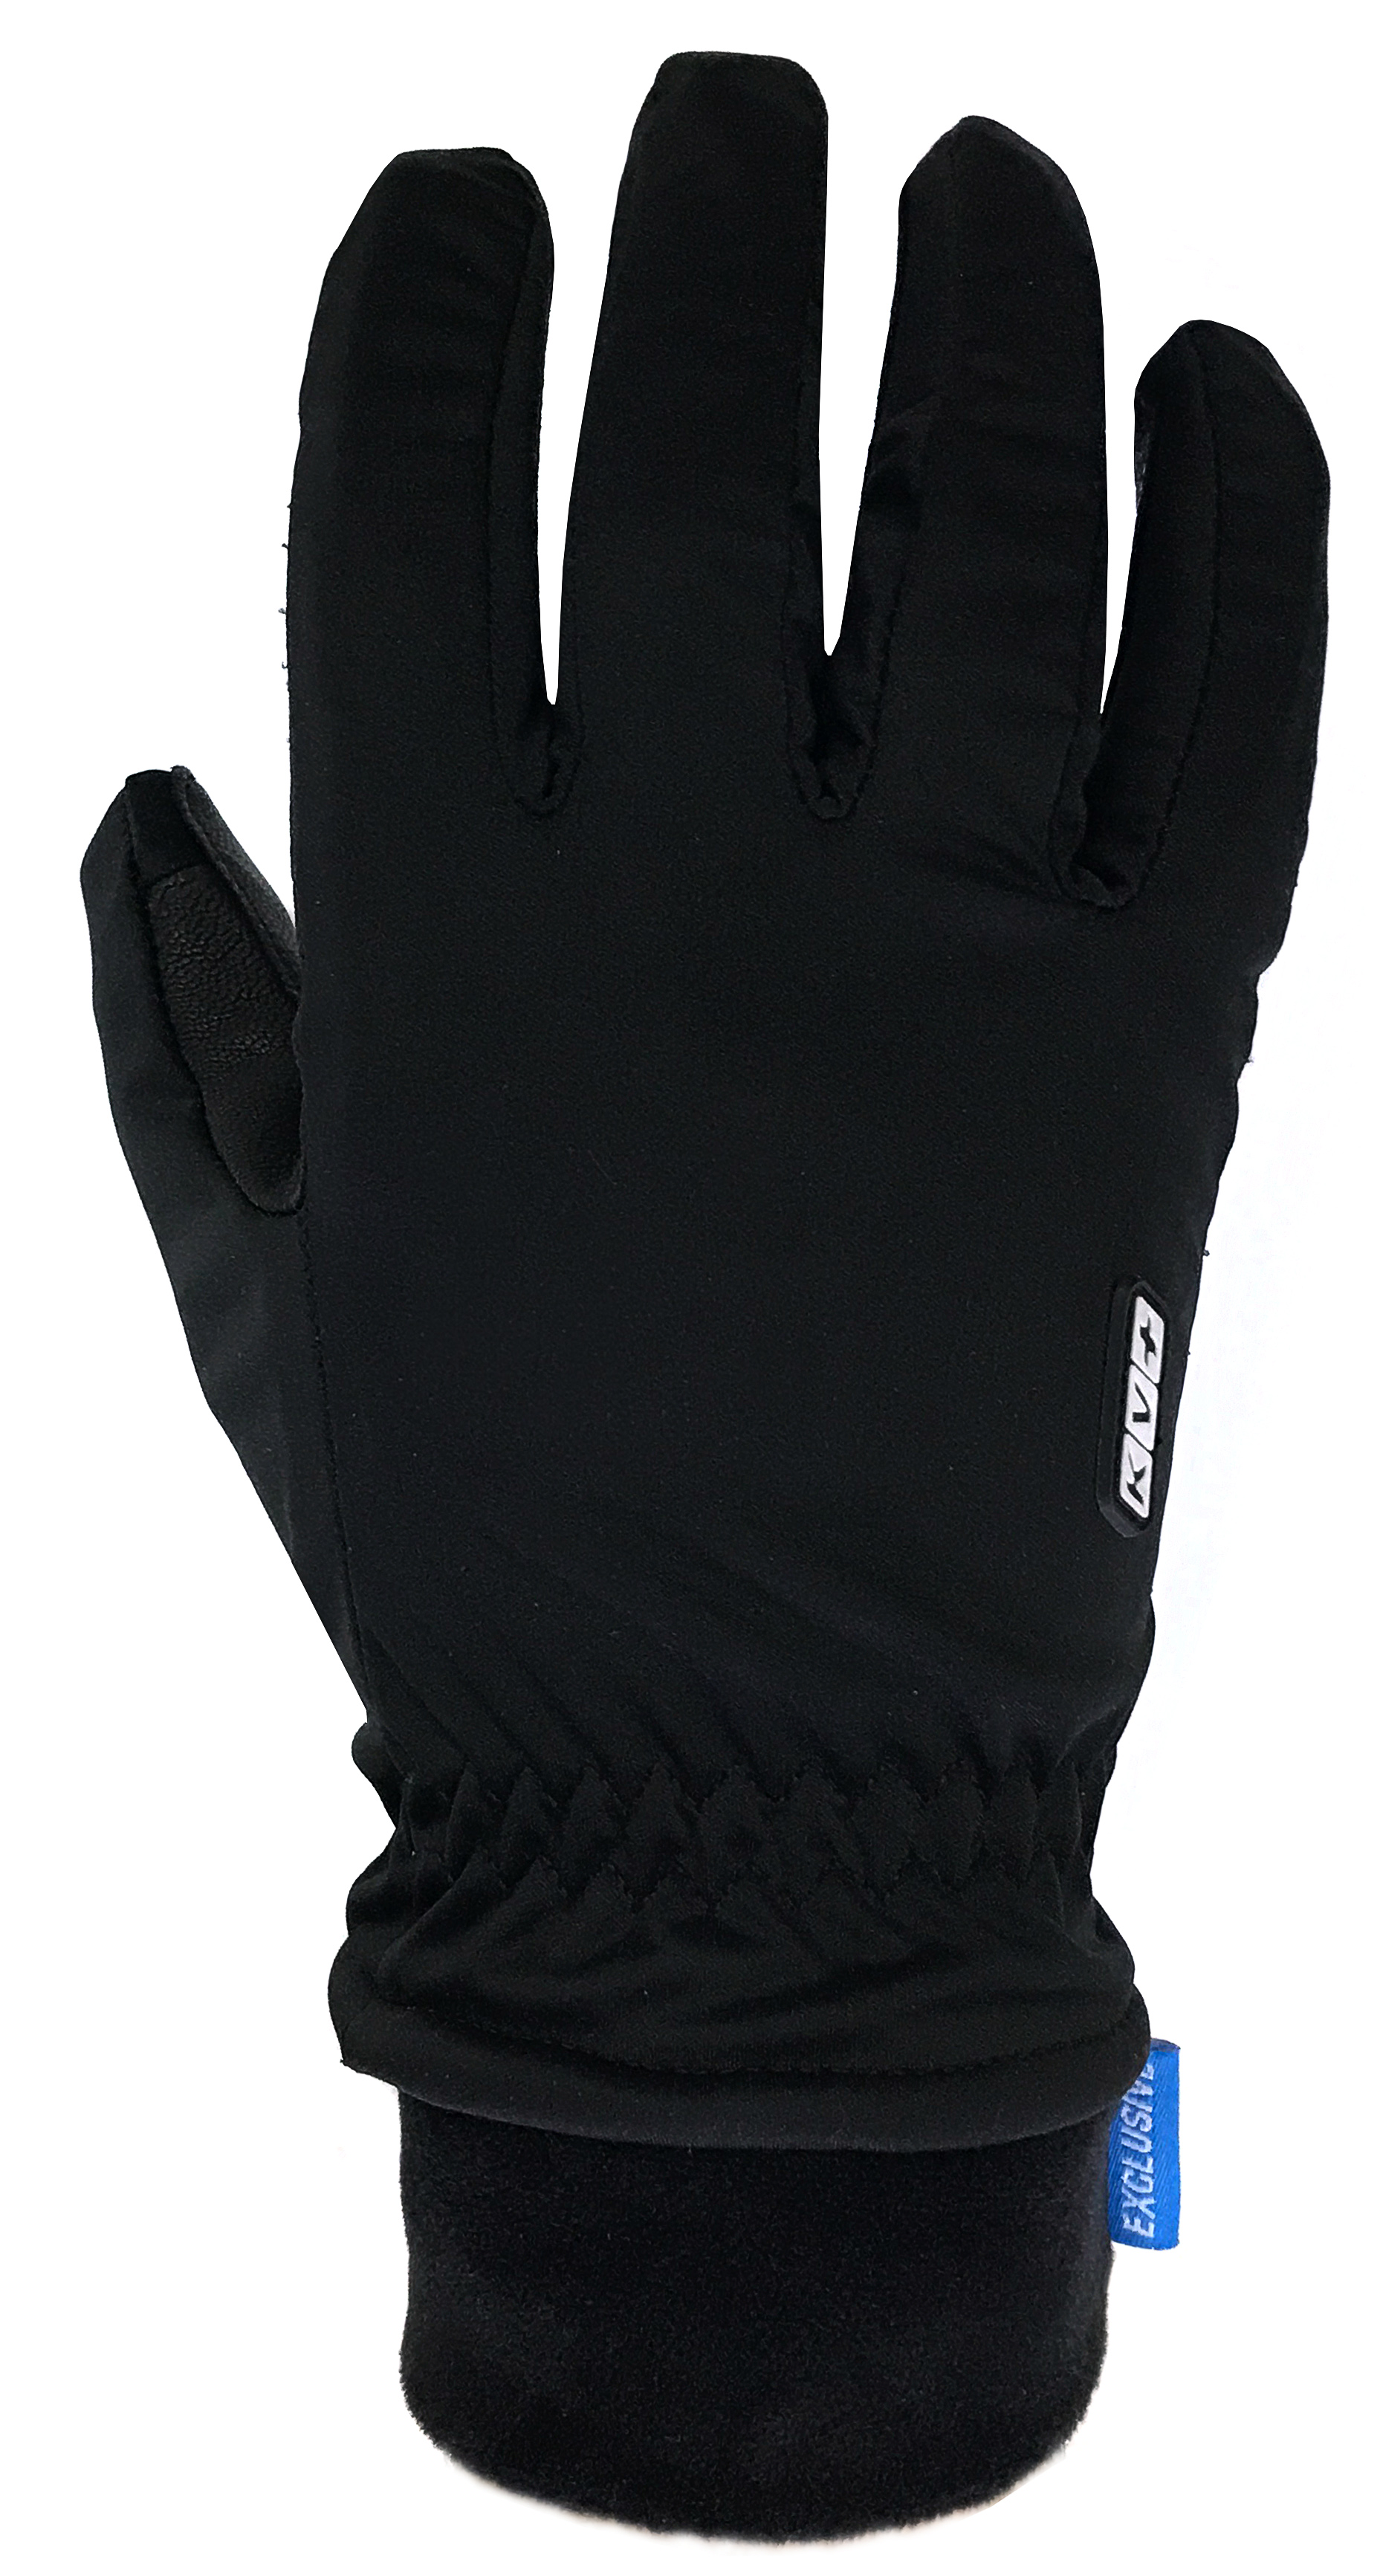 KV+ EXCLUSIVE GLOVES Black 6G03-1